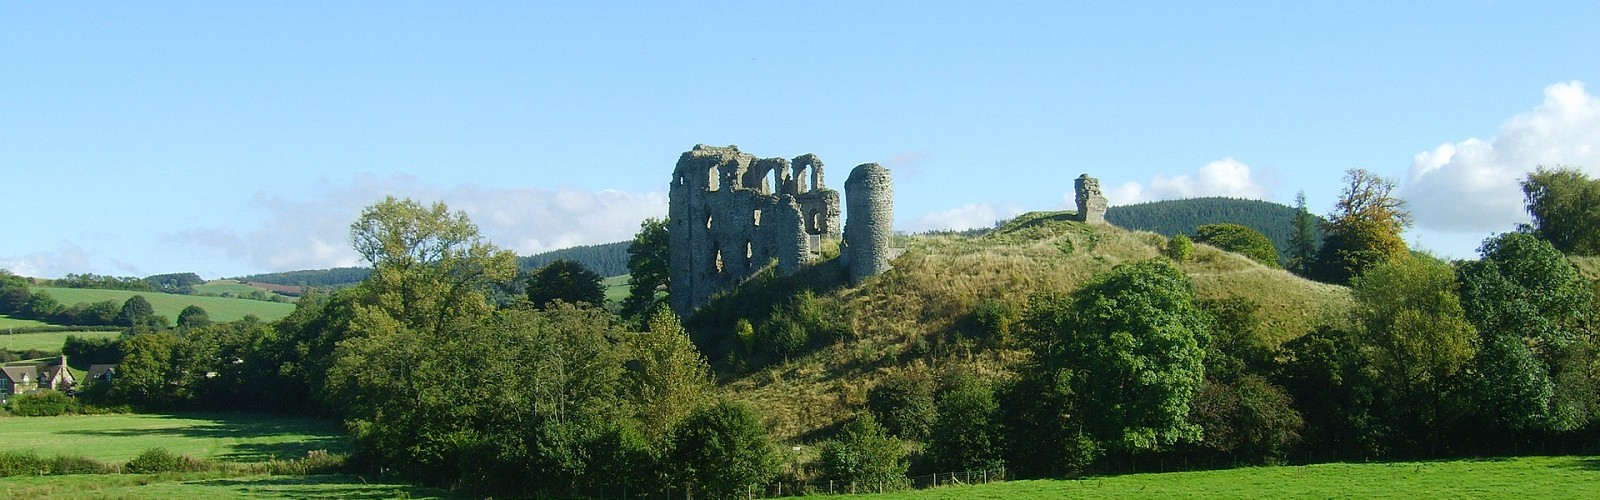 ruins of Clun Castle in Shropshire (image: Sean Scannell / pixabay)